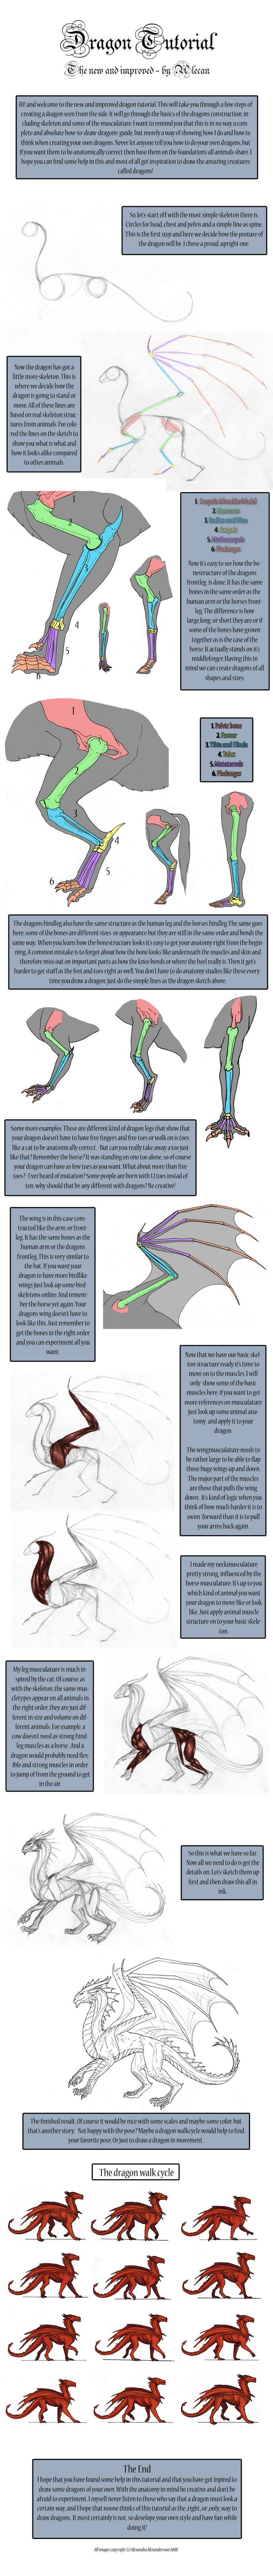 Dragon Tutorial - New by *alecan on deviantART    CHARACTER DESIGN REFERENCES   Find more at https://www.facebook.com/CharacterDesignReferences if you're looking for: #art #character #design #model #sheet #illustration #best #concept #animation #drawing #archive #library #reference #anatomy #traditional #draw #development #artist #how #to #tutorial #conceptart #modelsheet #dragon #dragons